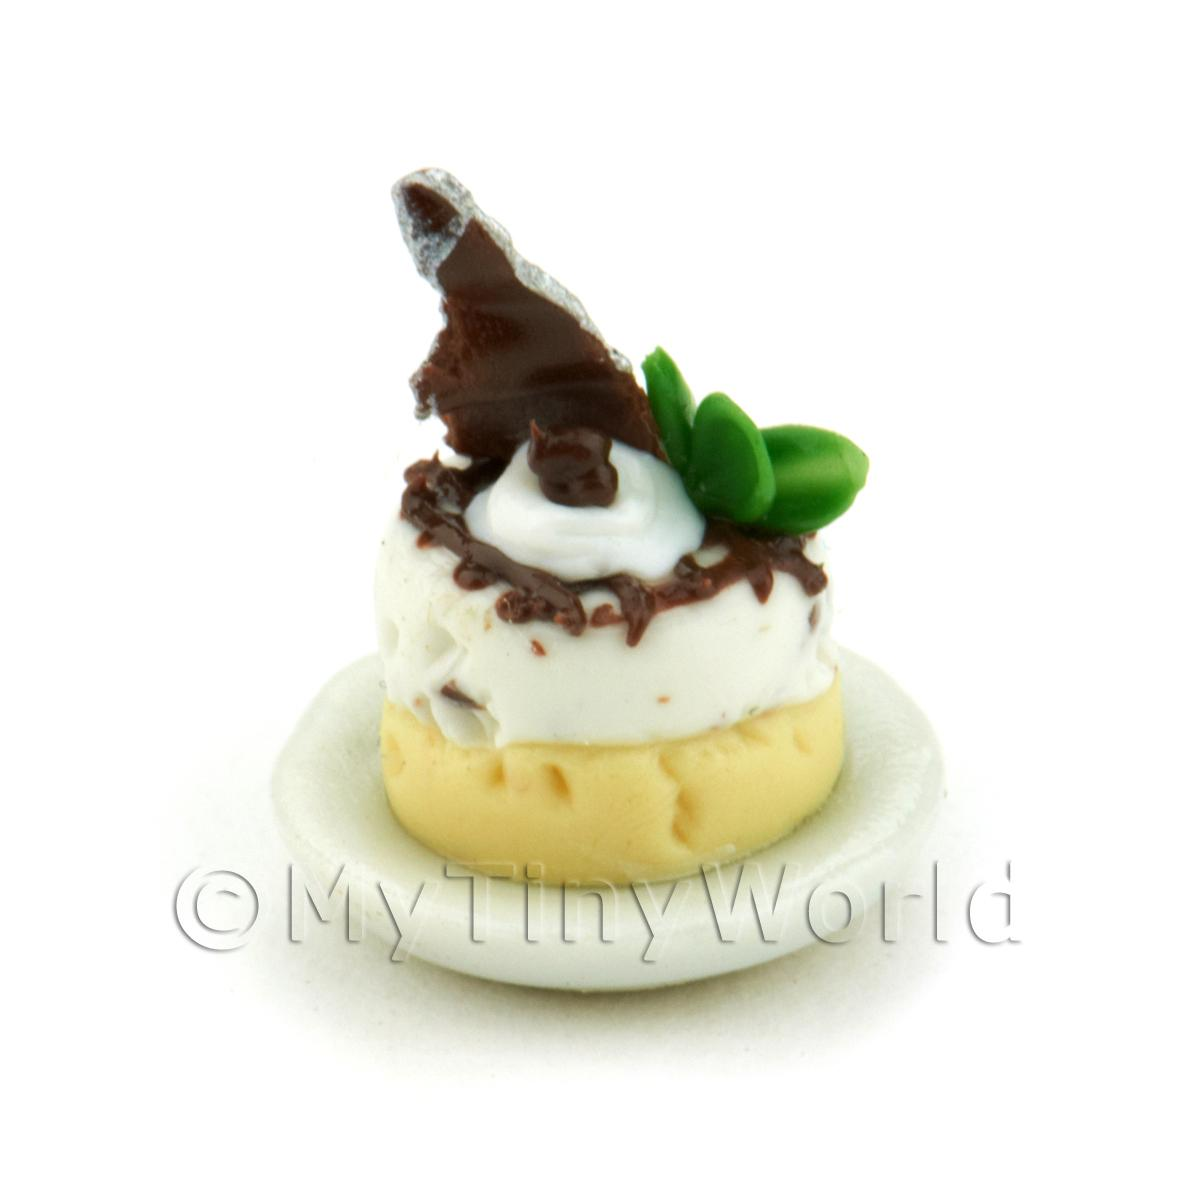 Dolls House Miniature Chocolate Topped, Iced Choux Bun